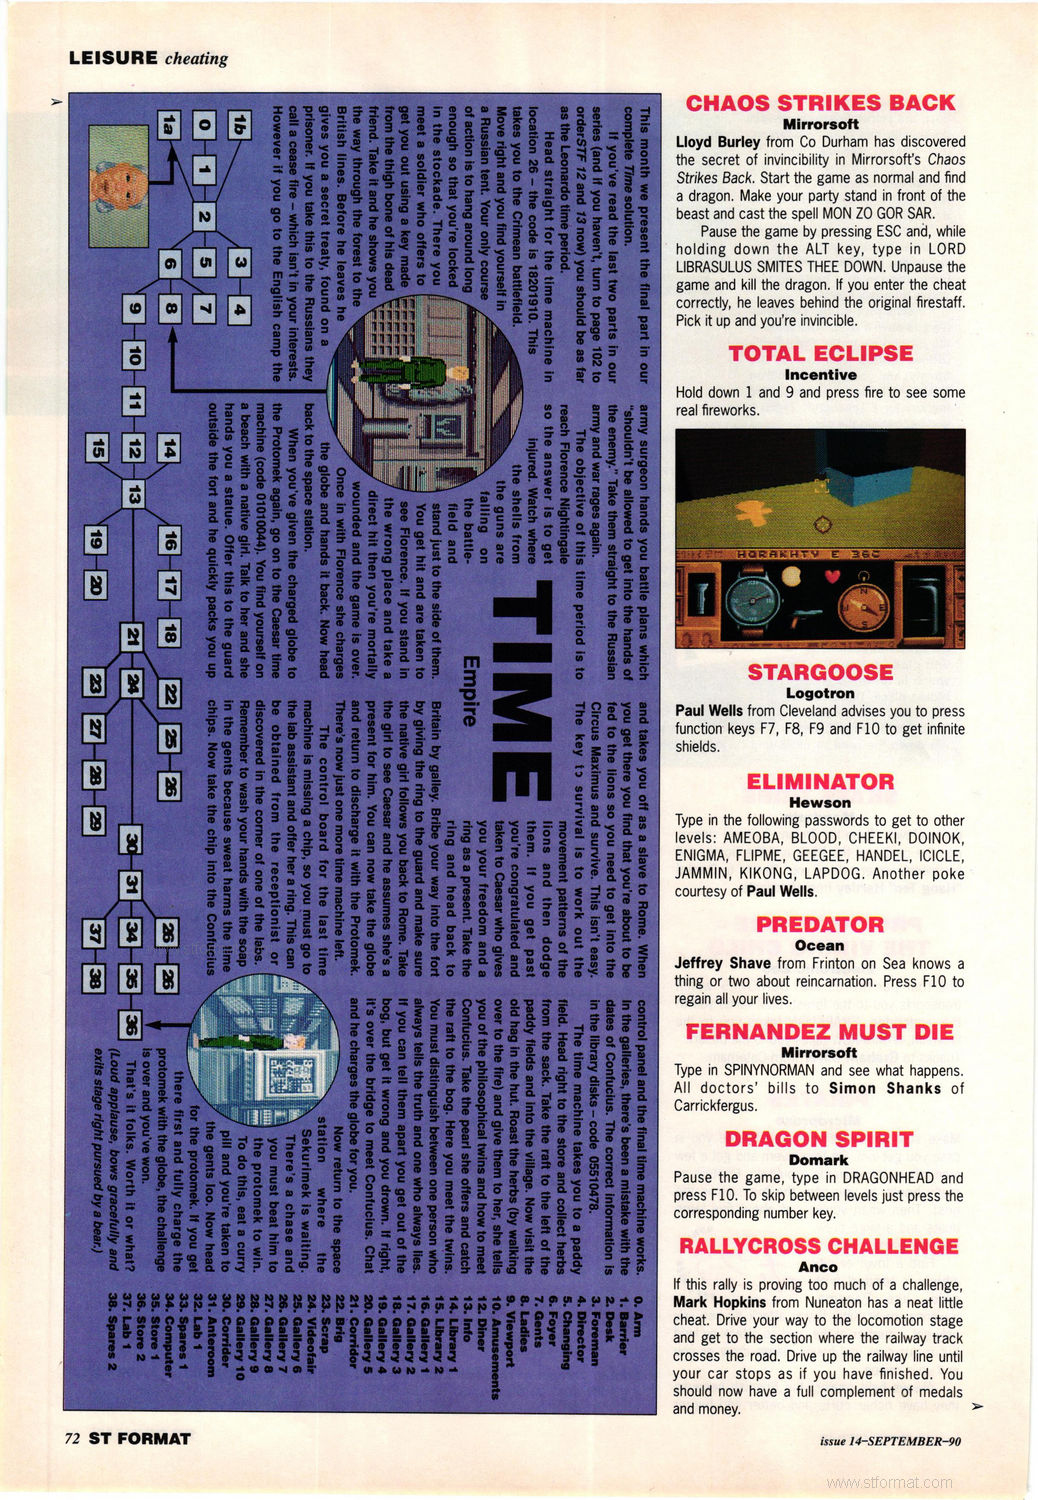 Chaos Strikes Back Fake CSB Cheat published in British magazine 'ST Format', Issue #14 September 1990, Page 72